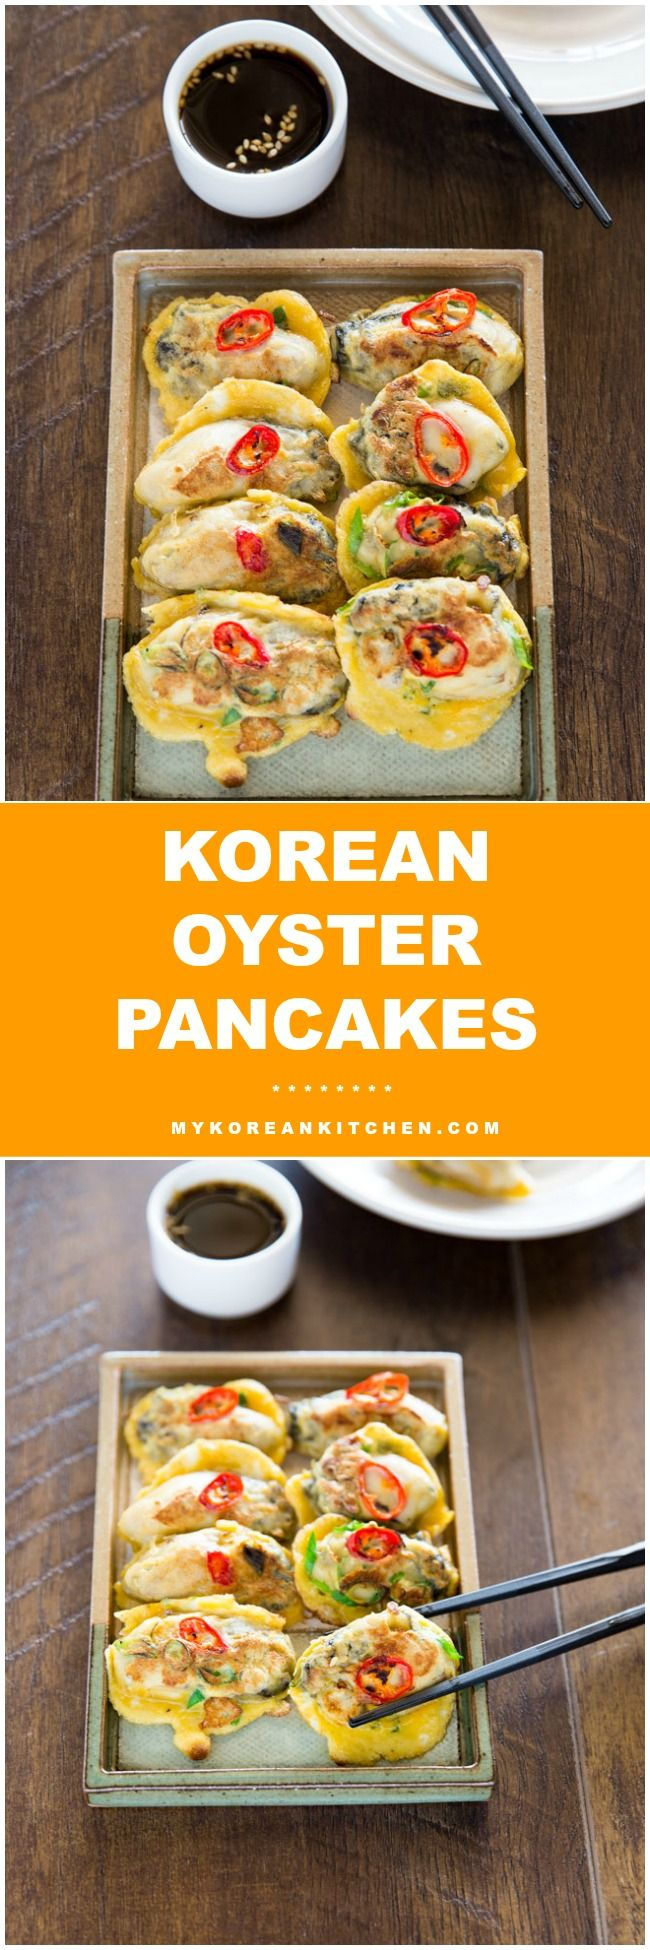 72 best korean food seafood images on pinterest korean cuisine how to make korean oyster pancakes mykoreankitchen forumfinder Choice Image